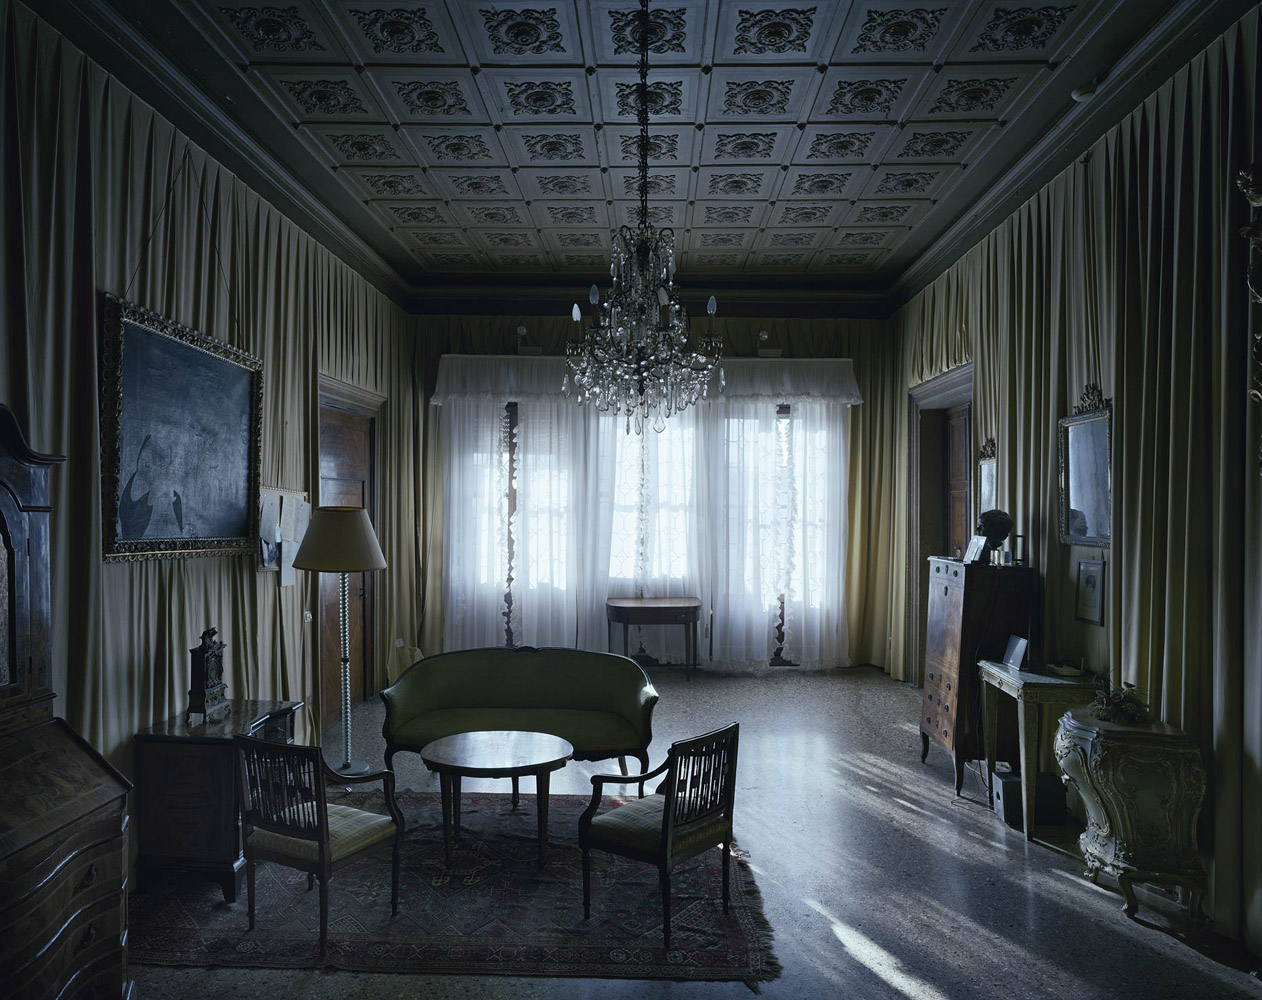 Palazzo Barbarigo Minotto, Venice, Italy, 2012, by David Leventi. Fujicolor Crystal Archive print of an interior palace room, mounted to Dibond.